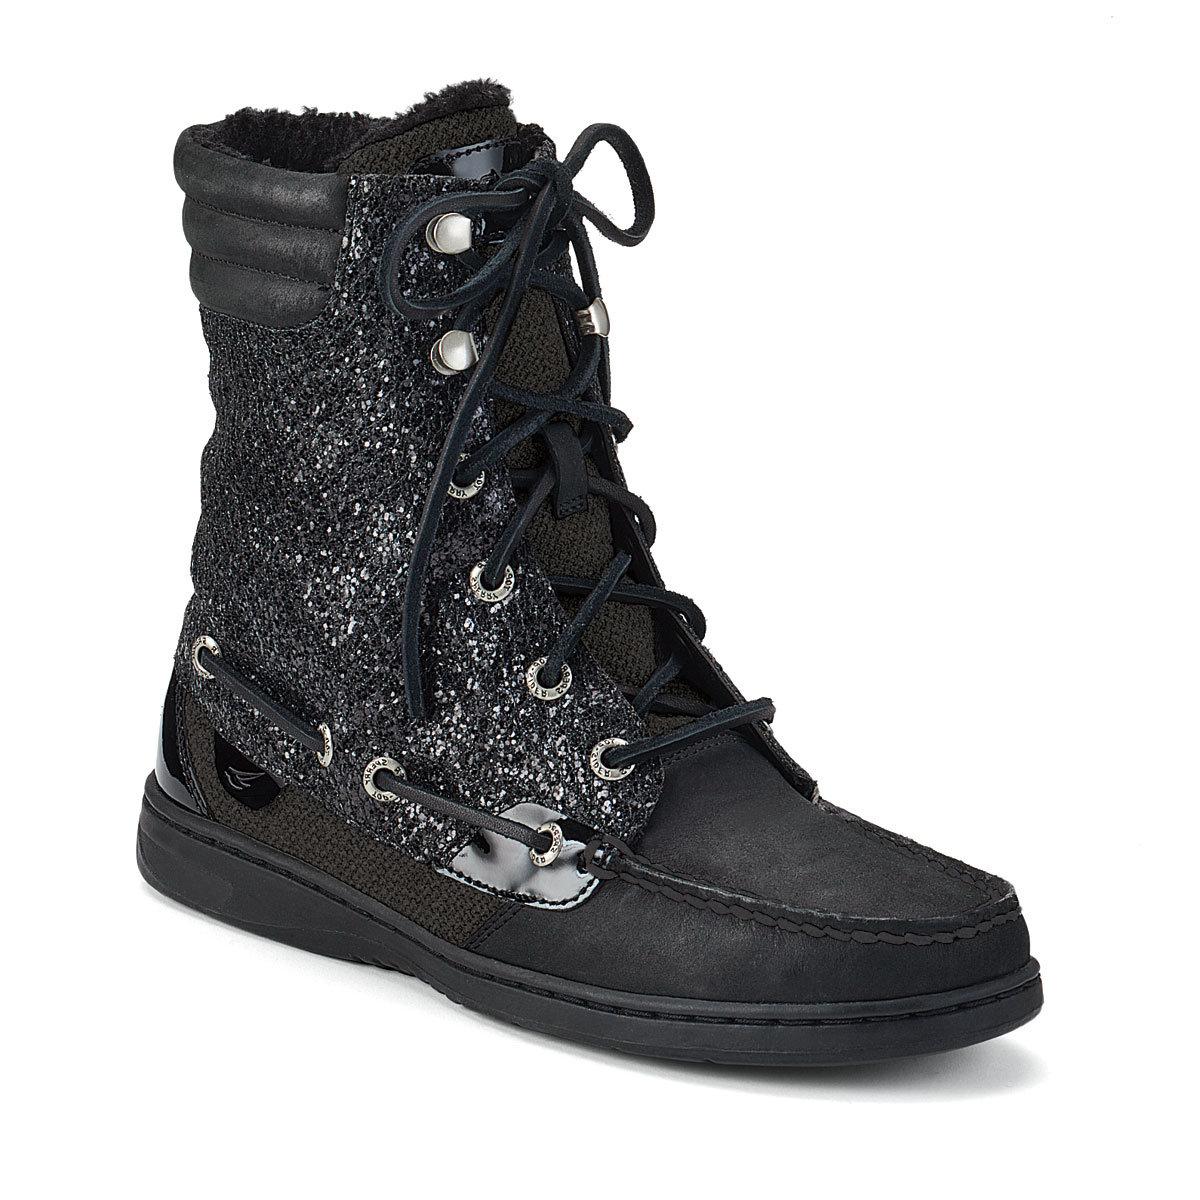 Sperry top sider women 39 s hiker fish boot from sperry top sider for Shoes with fish in them